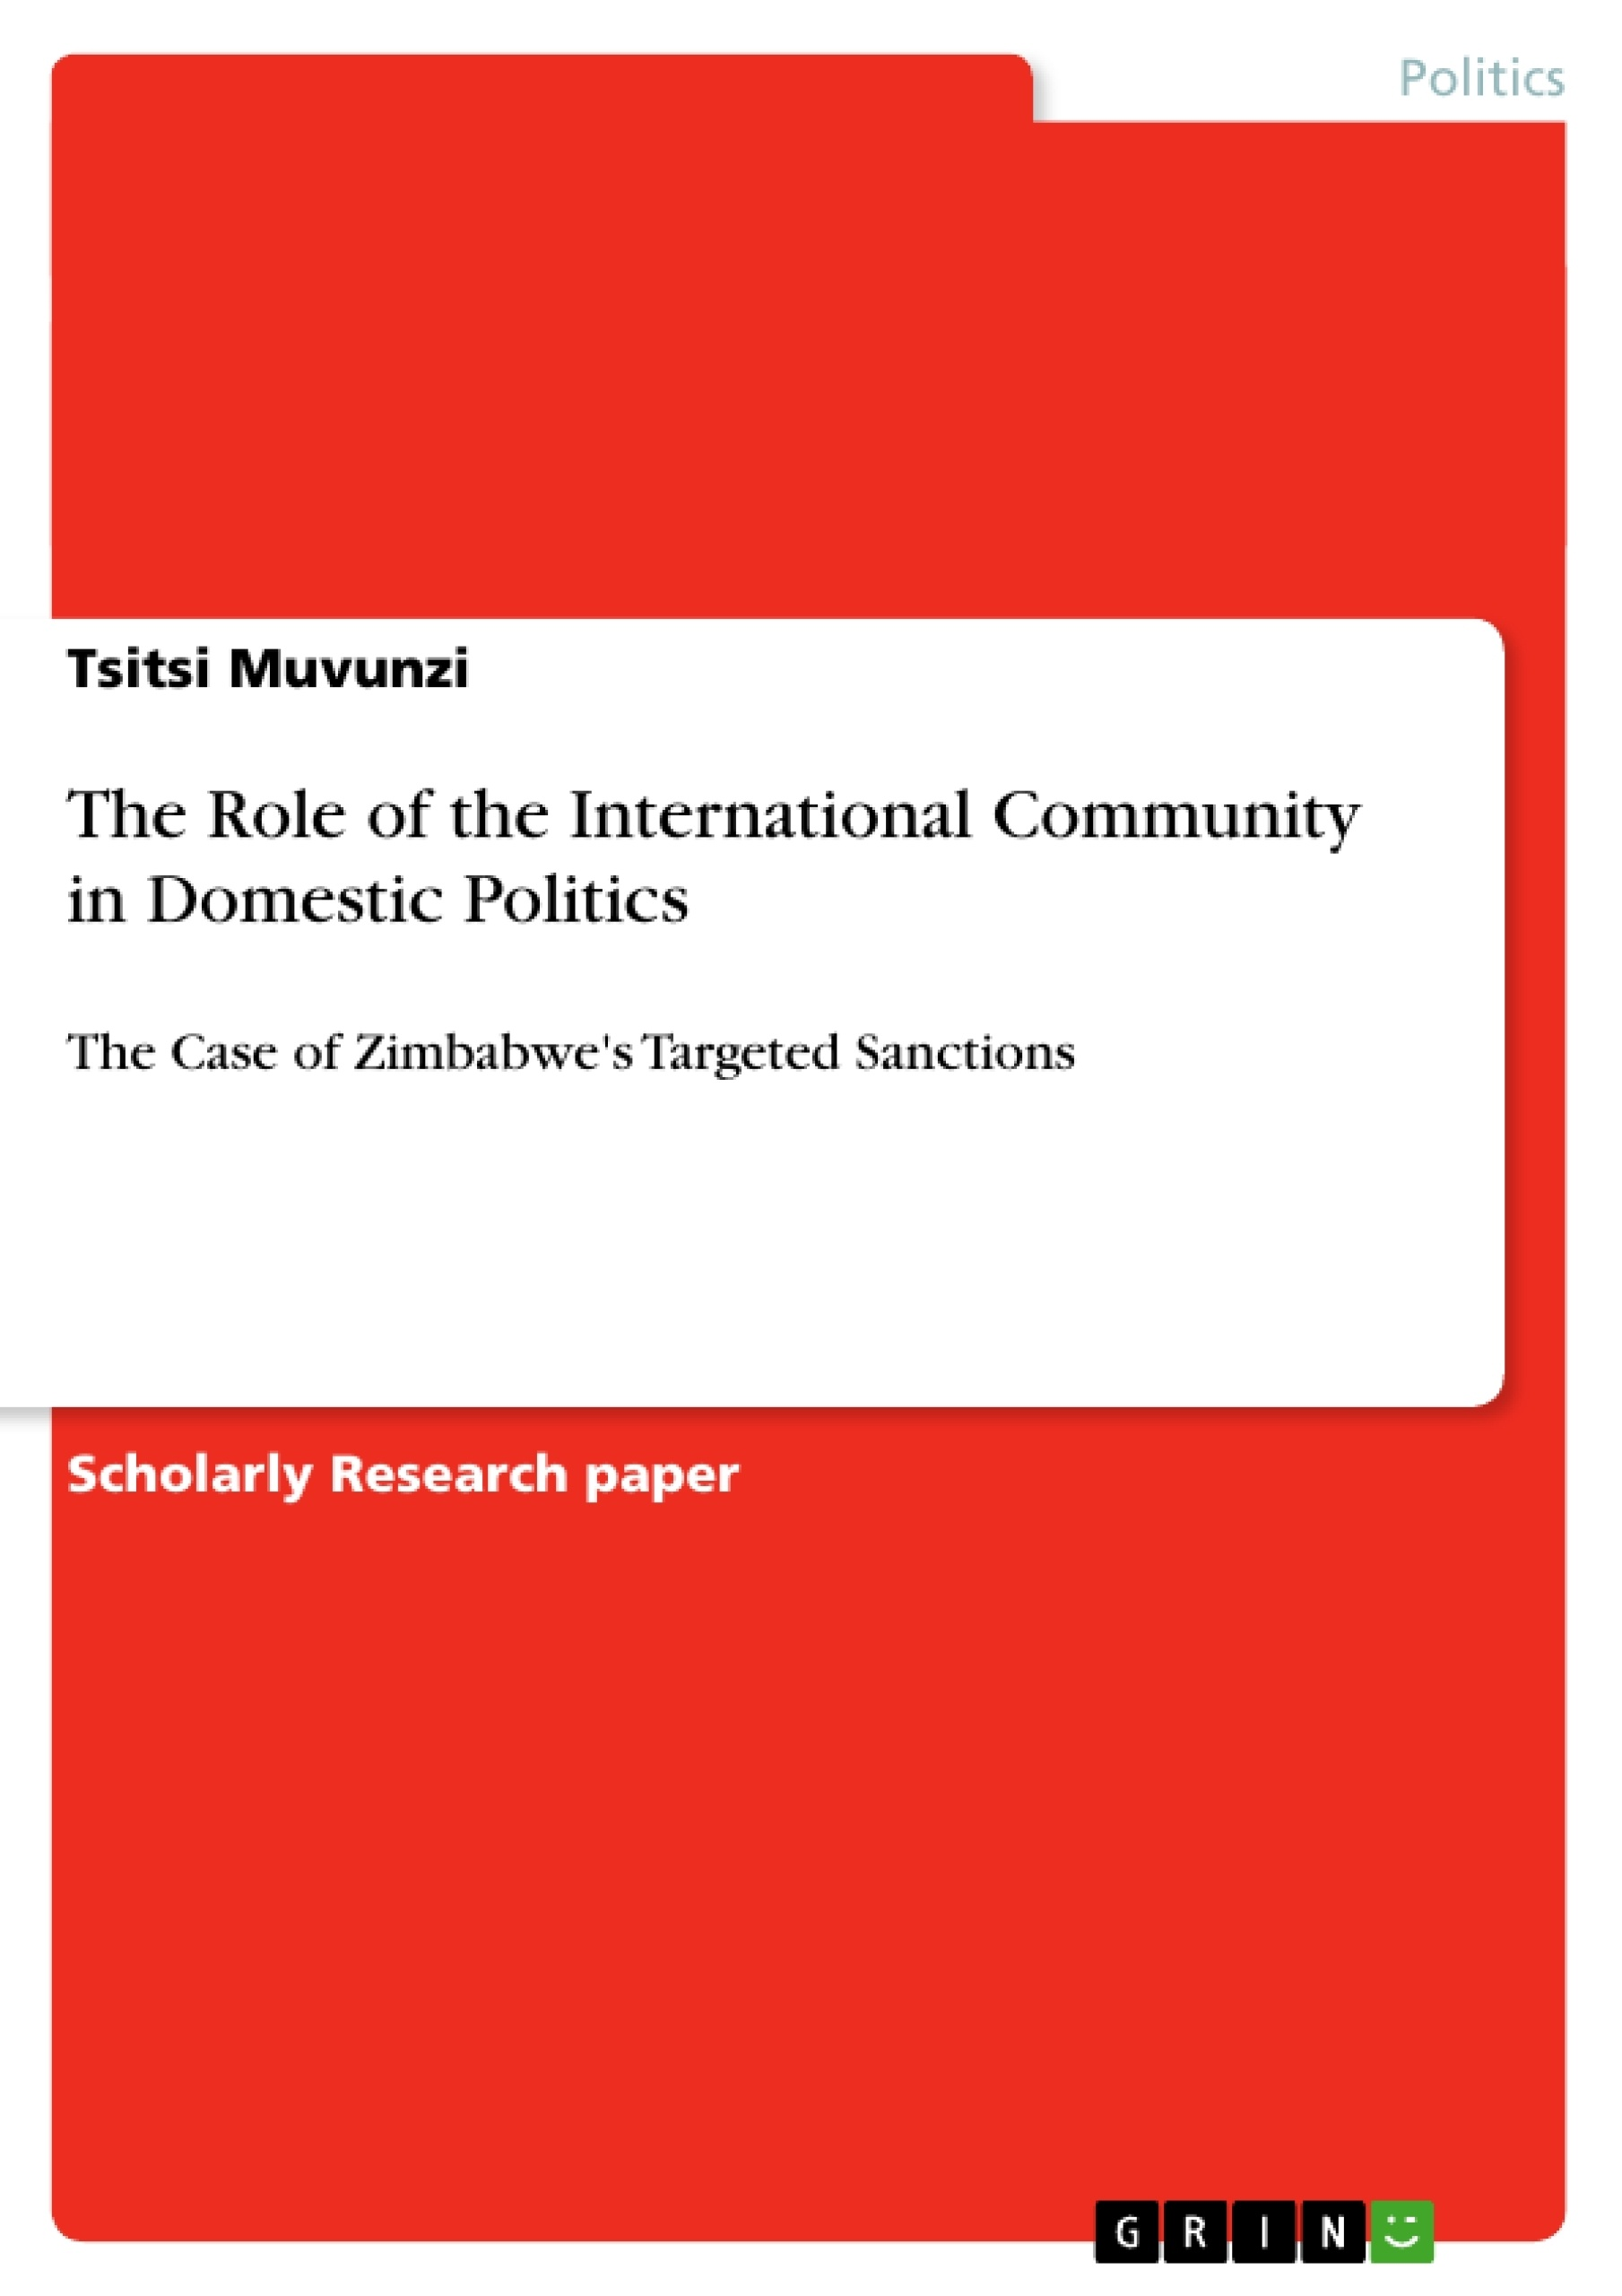 Title: The Role of the International Community in Domestic Politics